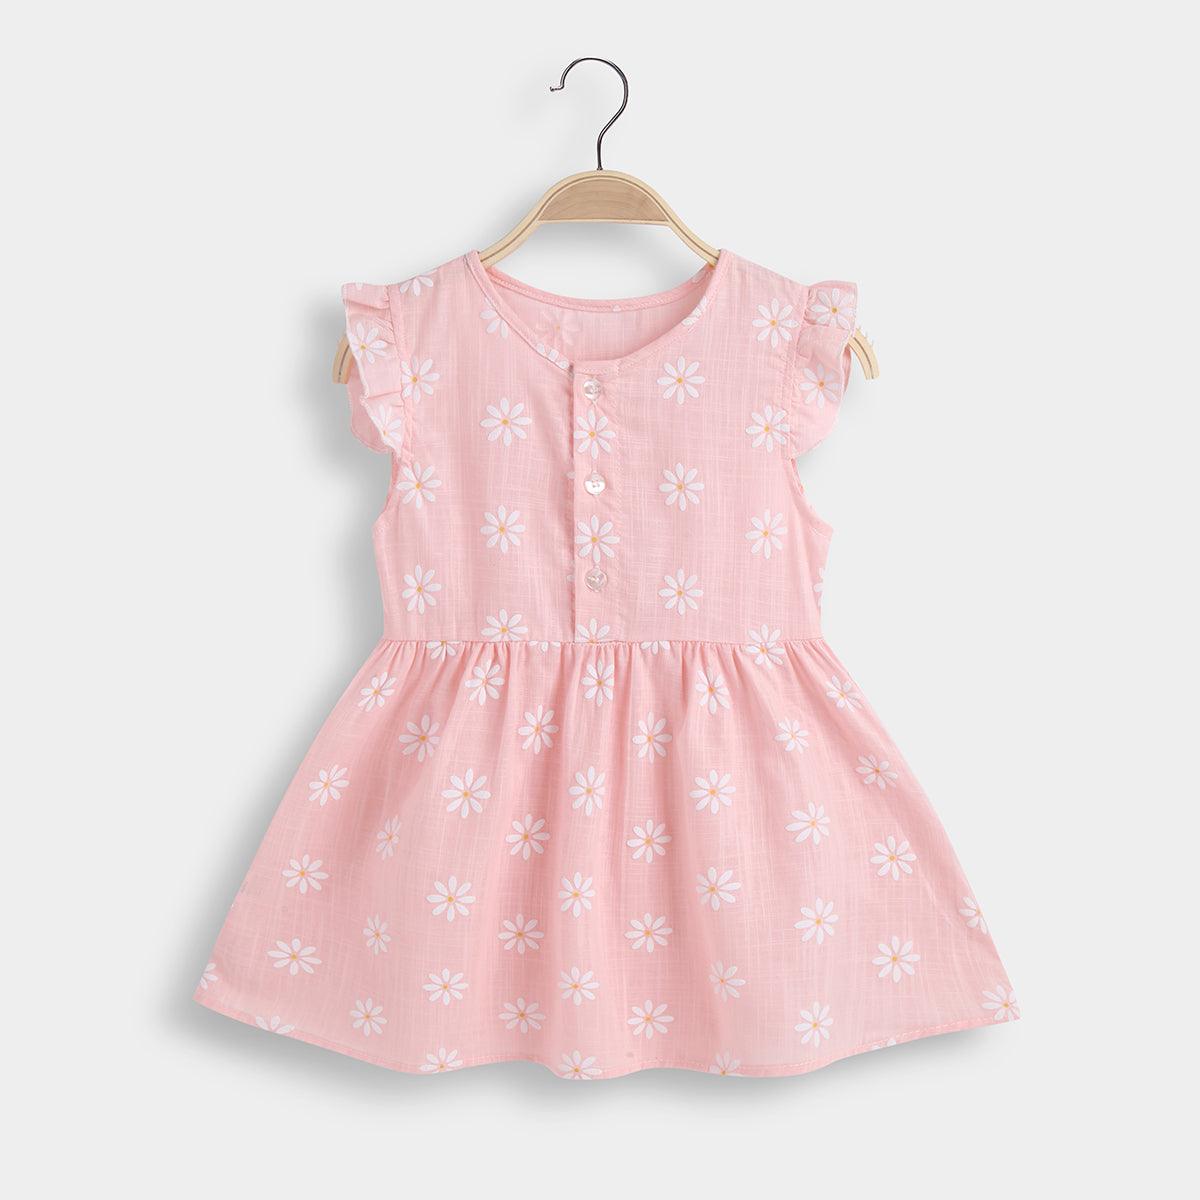 Baby Daisy Allover Solid Dresses